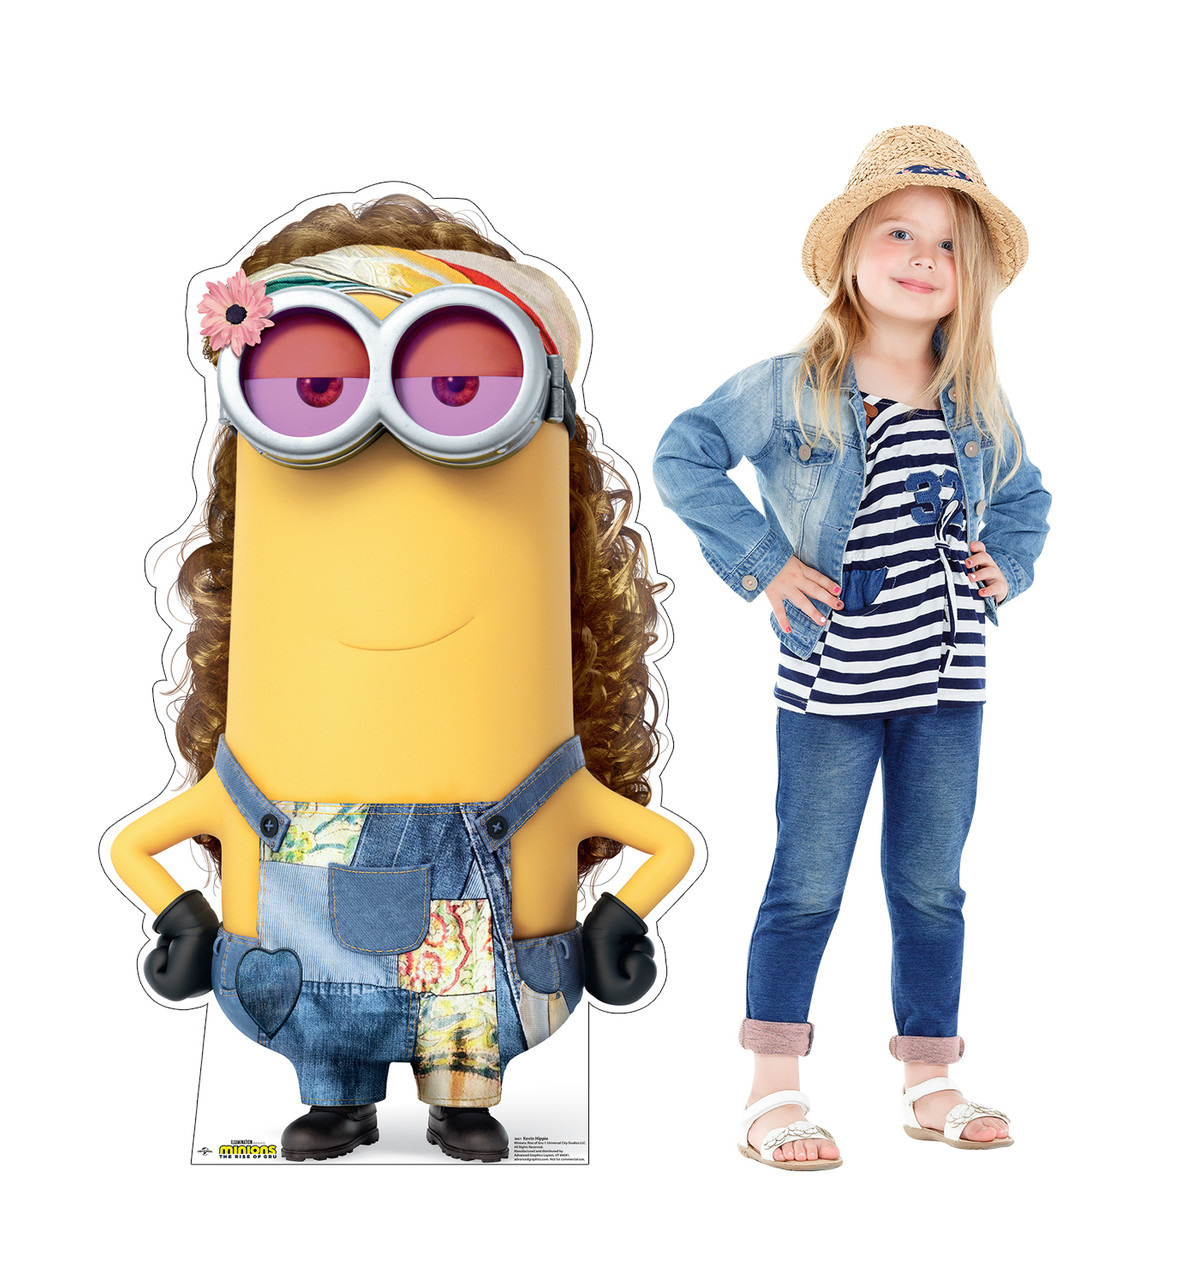 Life-size cardboard standee of Kevin Hippie from the new movie Minions Rise of Gru with model.